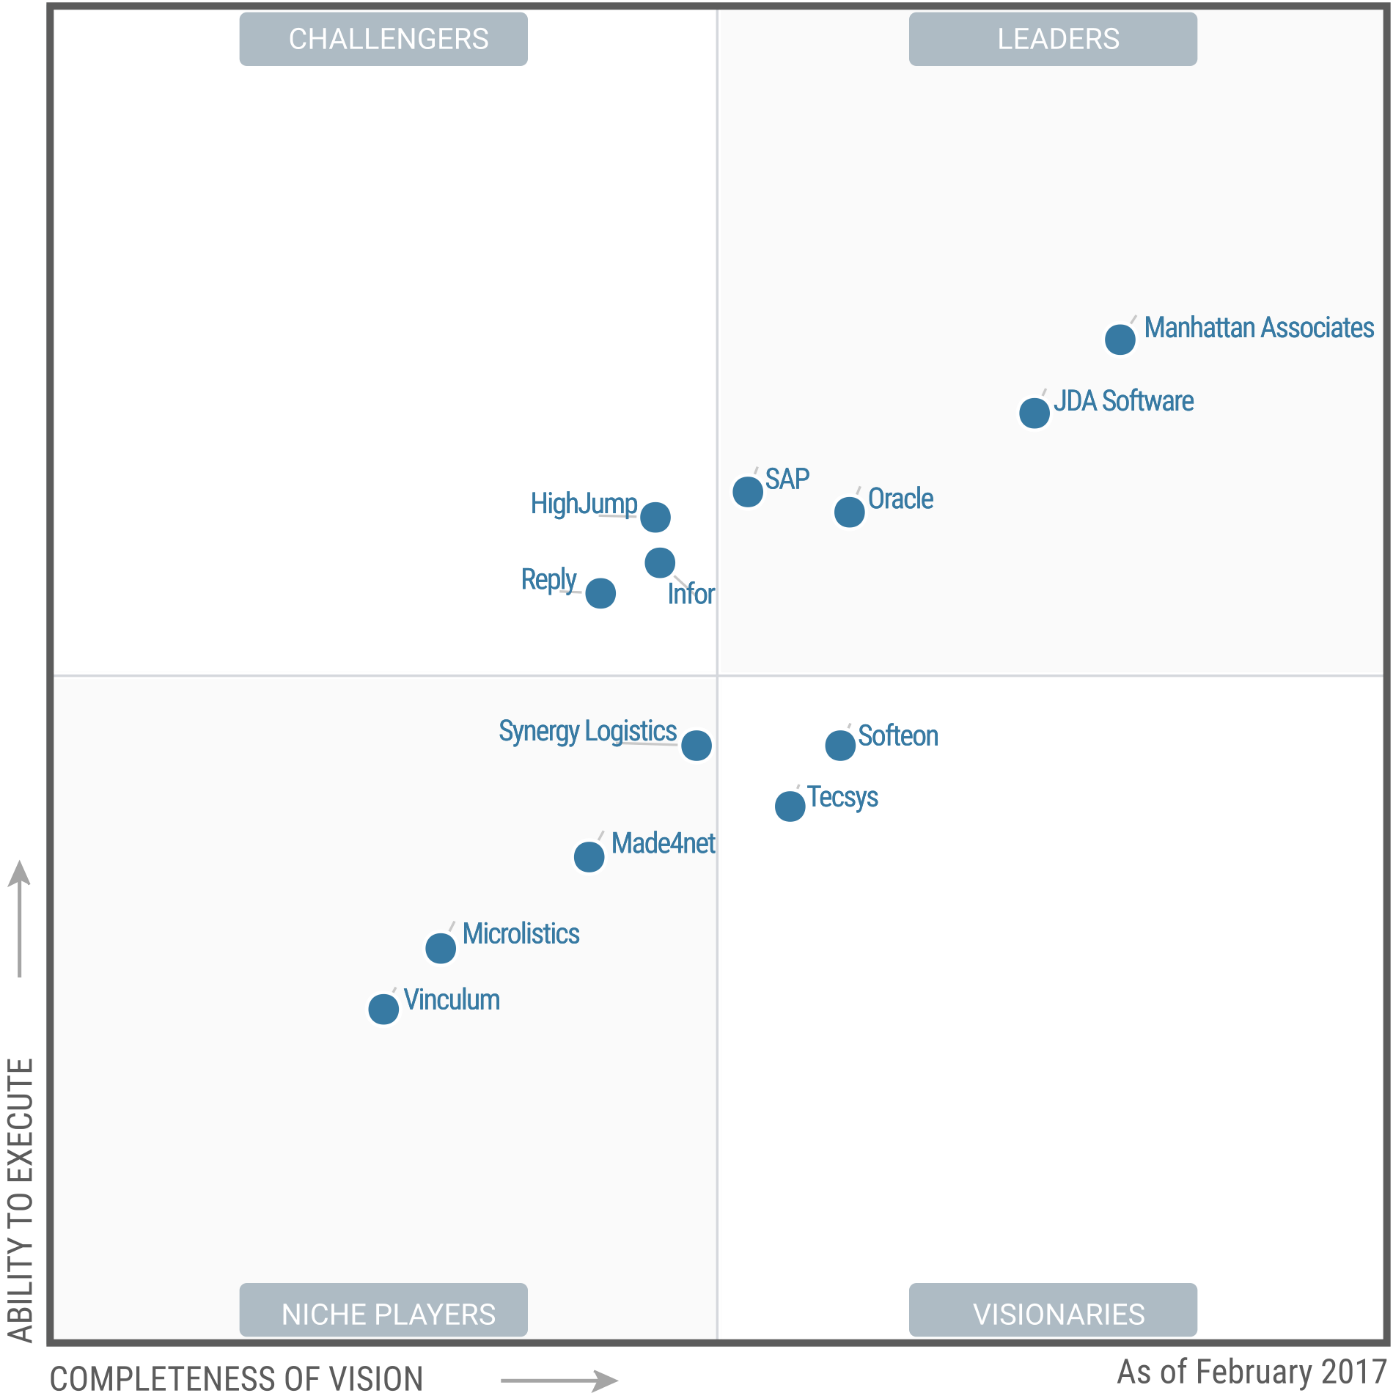 Magic Quadrant for Warehouse Management Systems 2017 (G00300345)